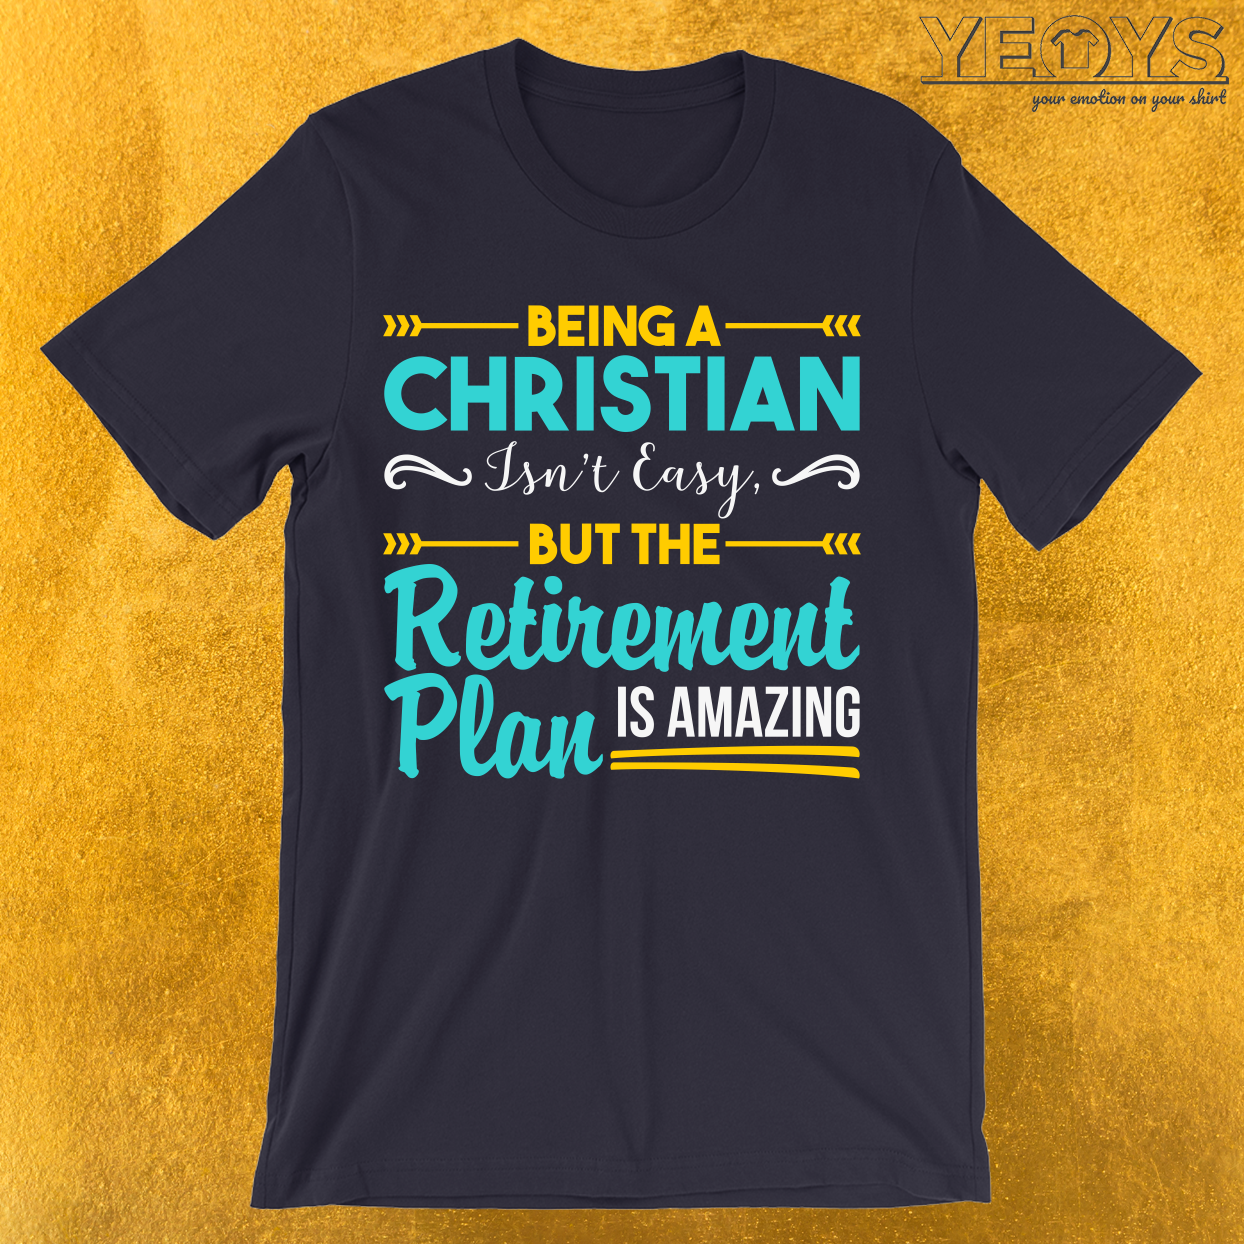 The Retirement Plan Is Amazing T-Shirt